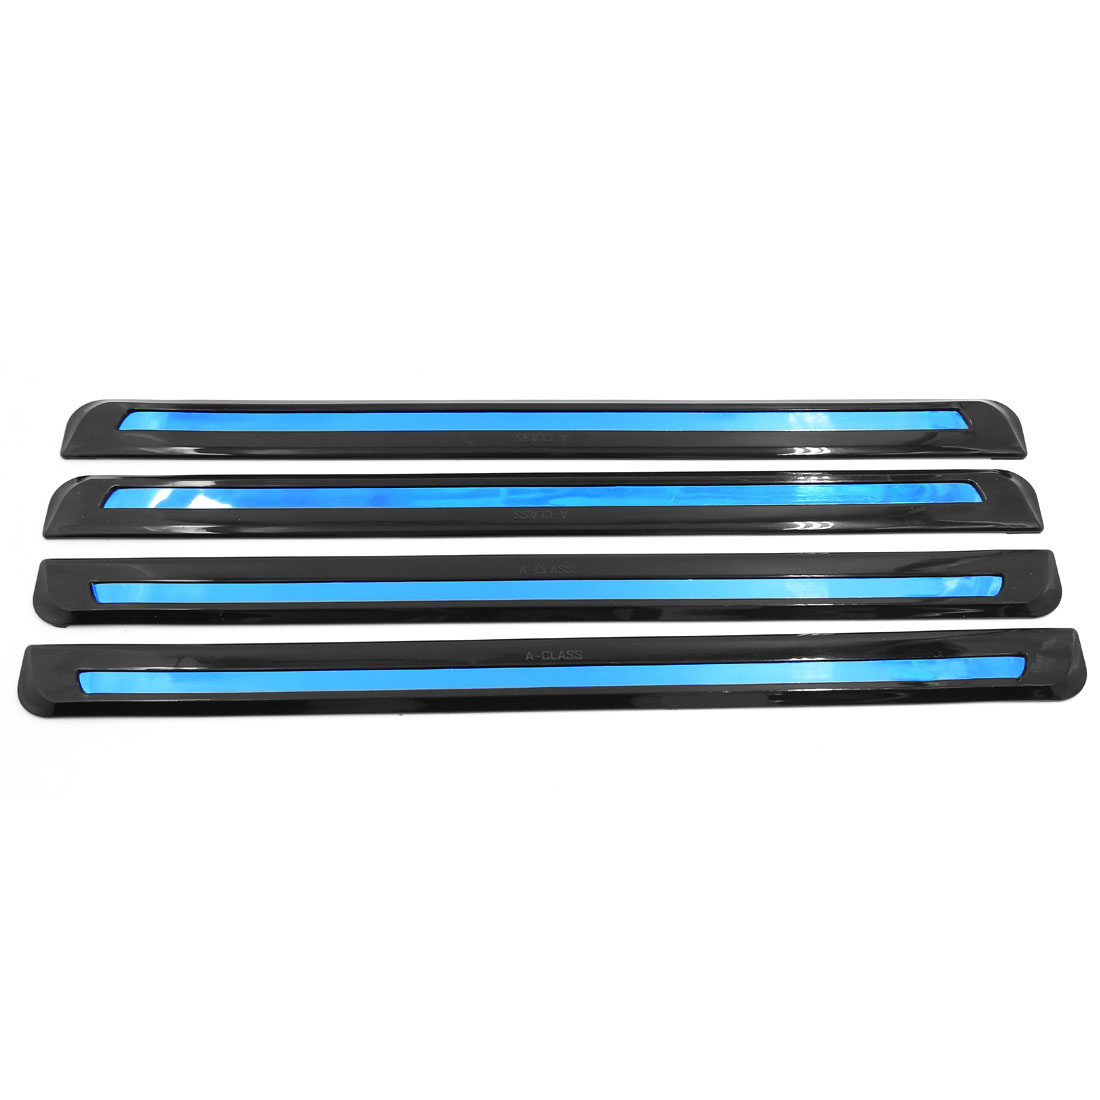 4 Pcs Blue Reflector Flexible Front Rear Bumper Guard Protector Decor Black for Car